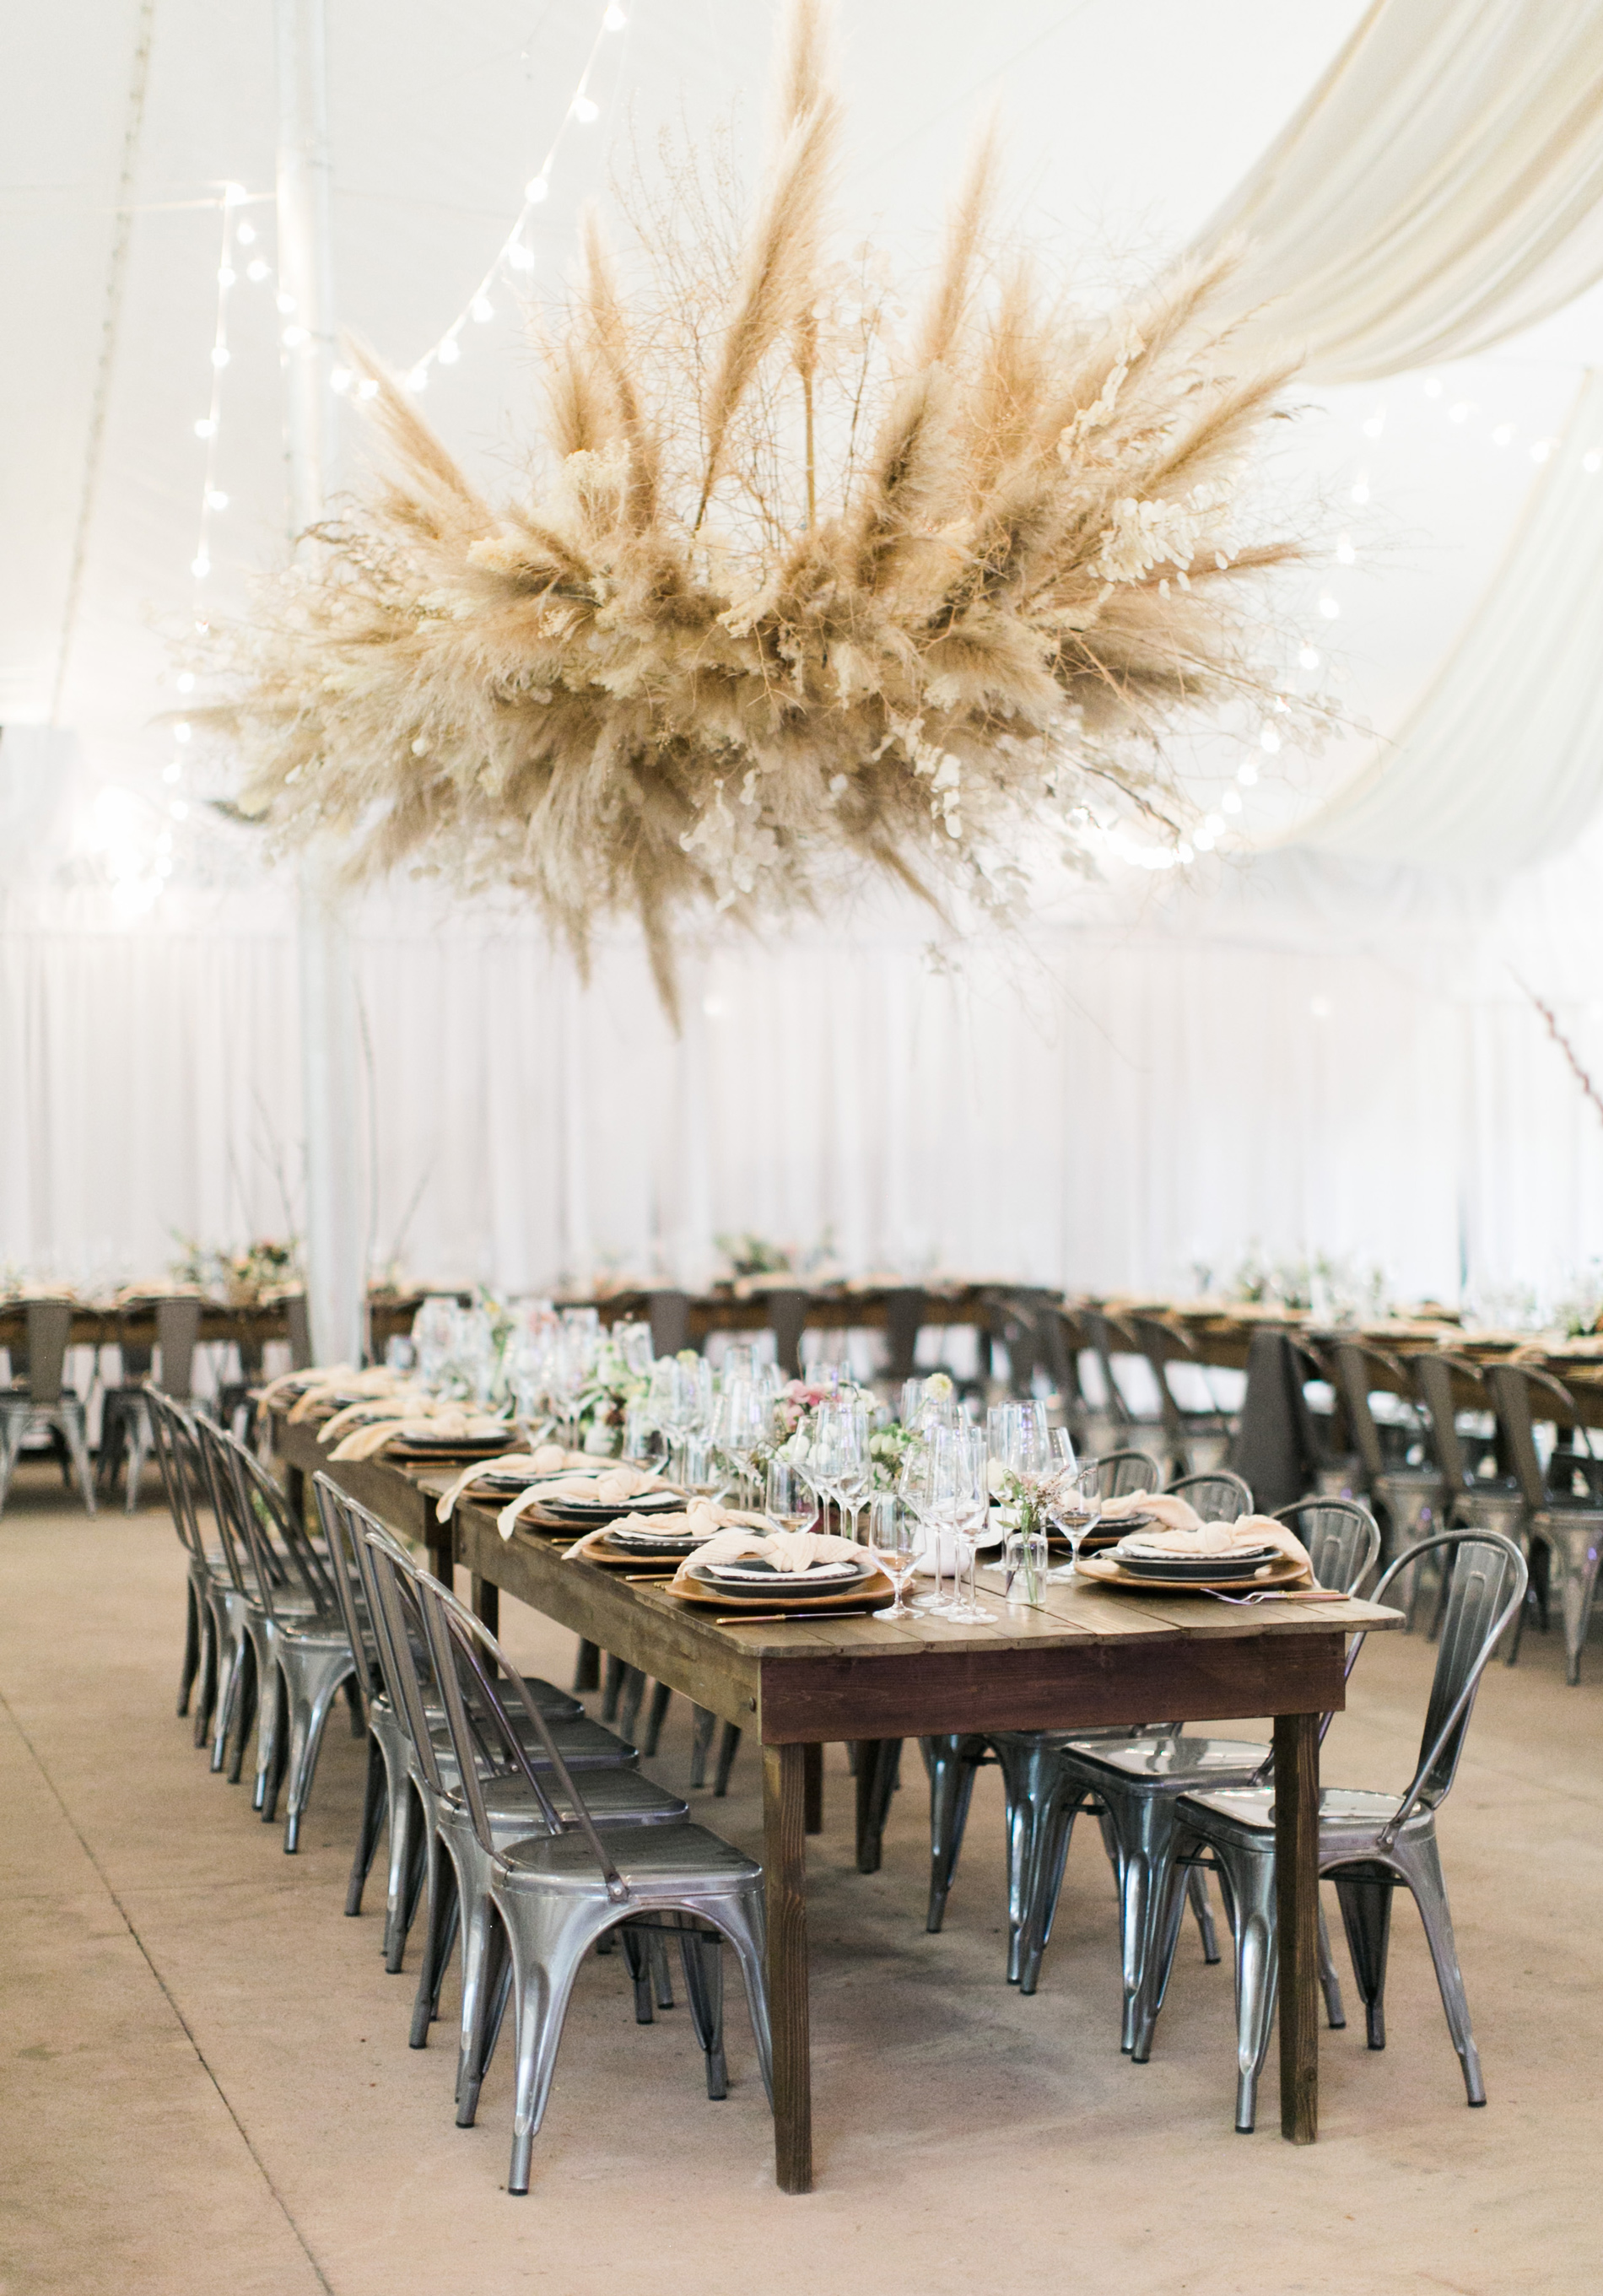 white tent wedding reception filled with hanging floral decor, rustic tables, and string lights